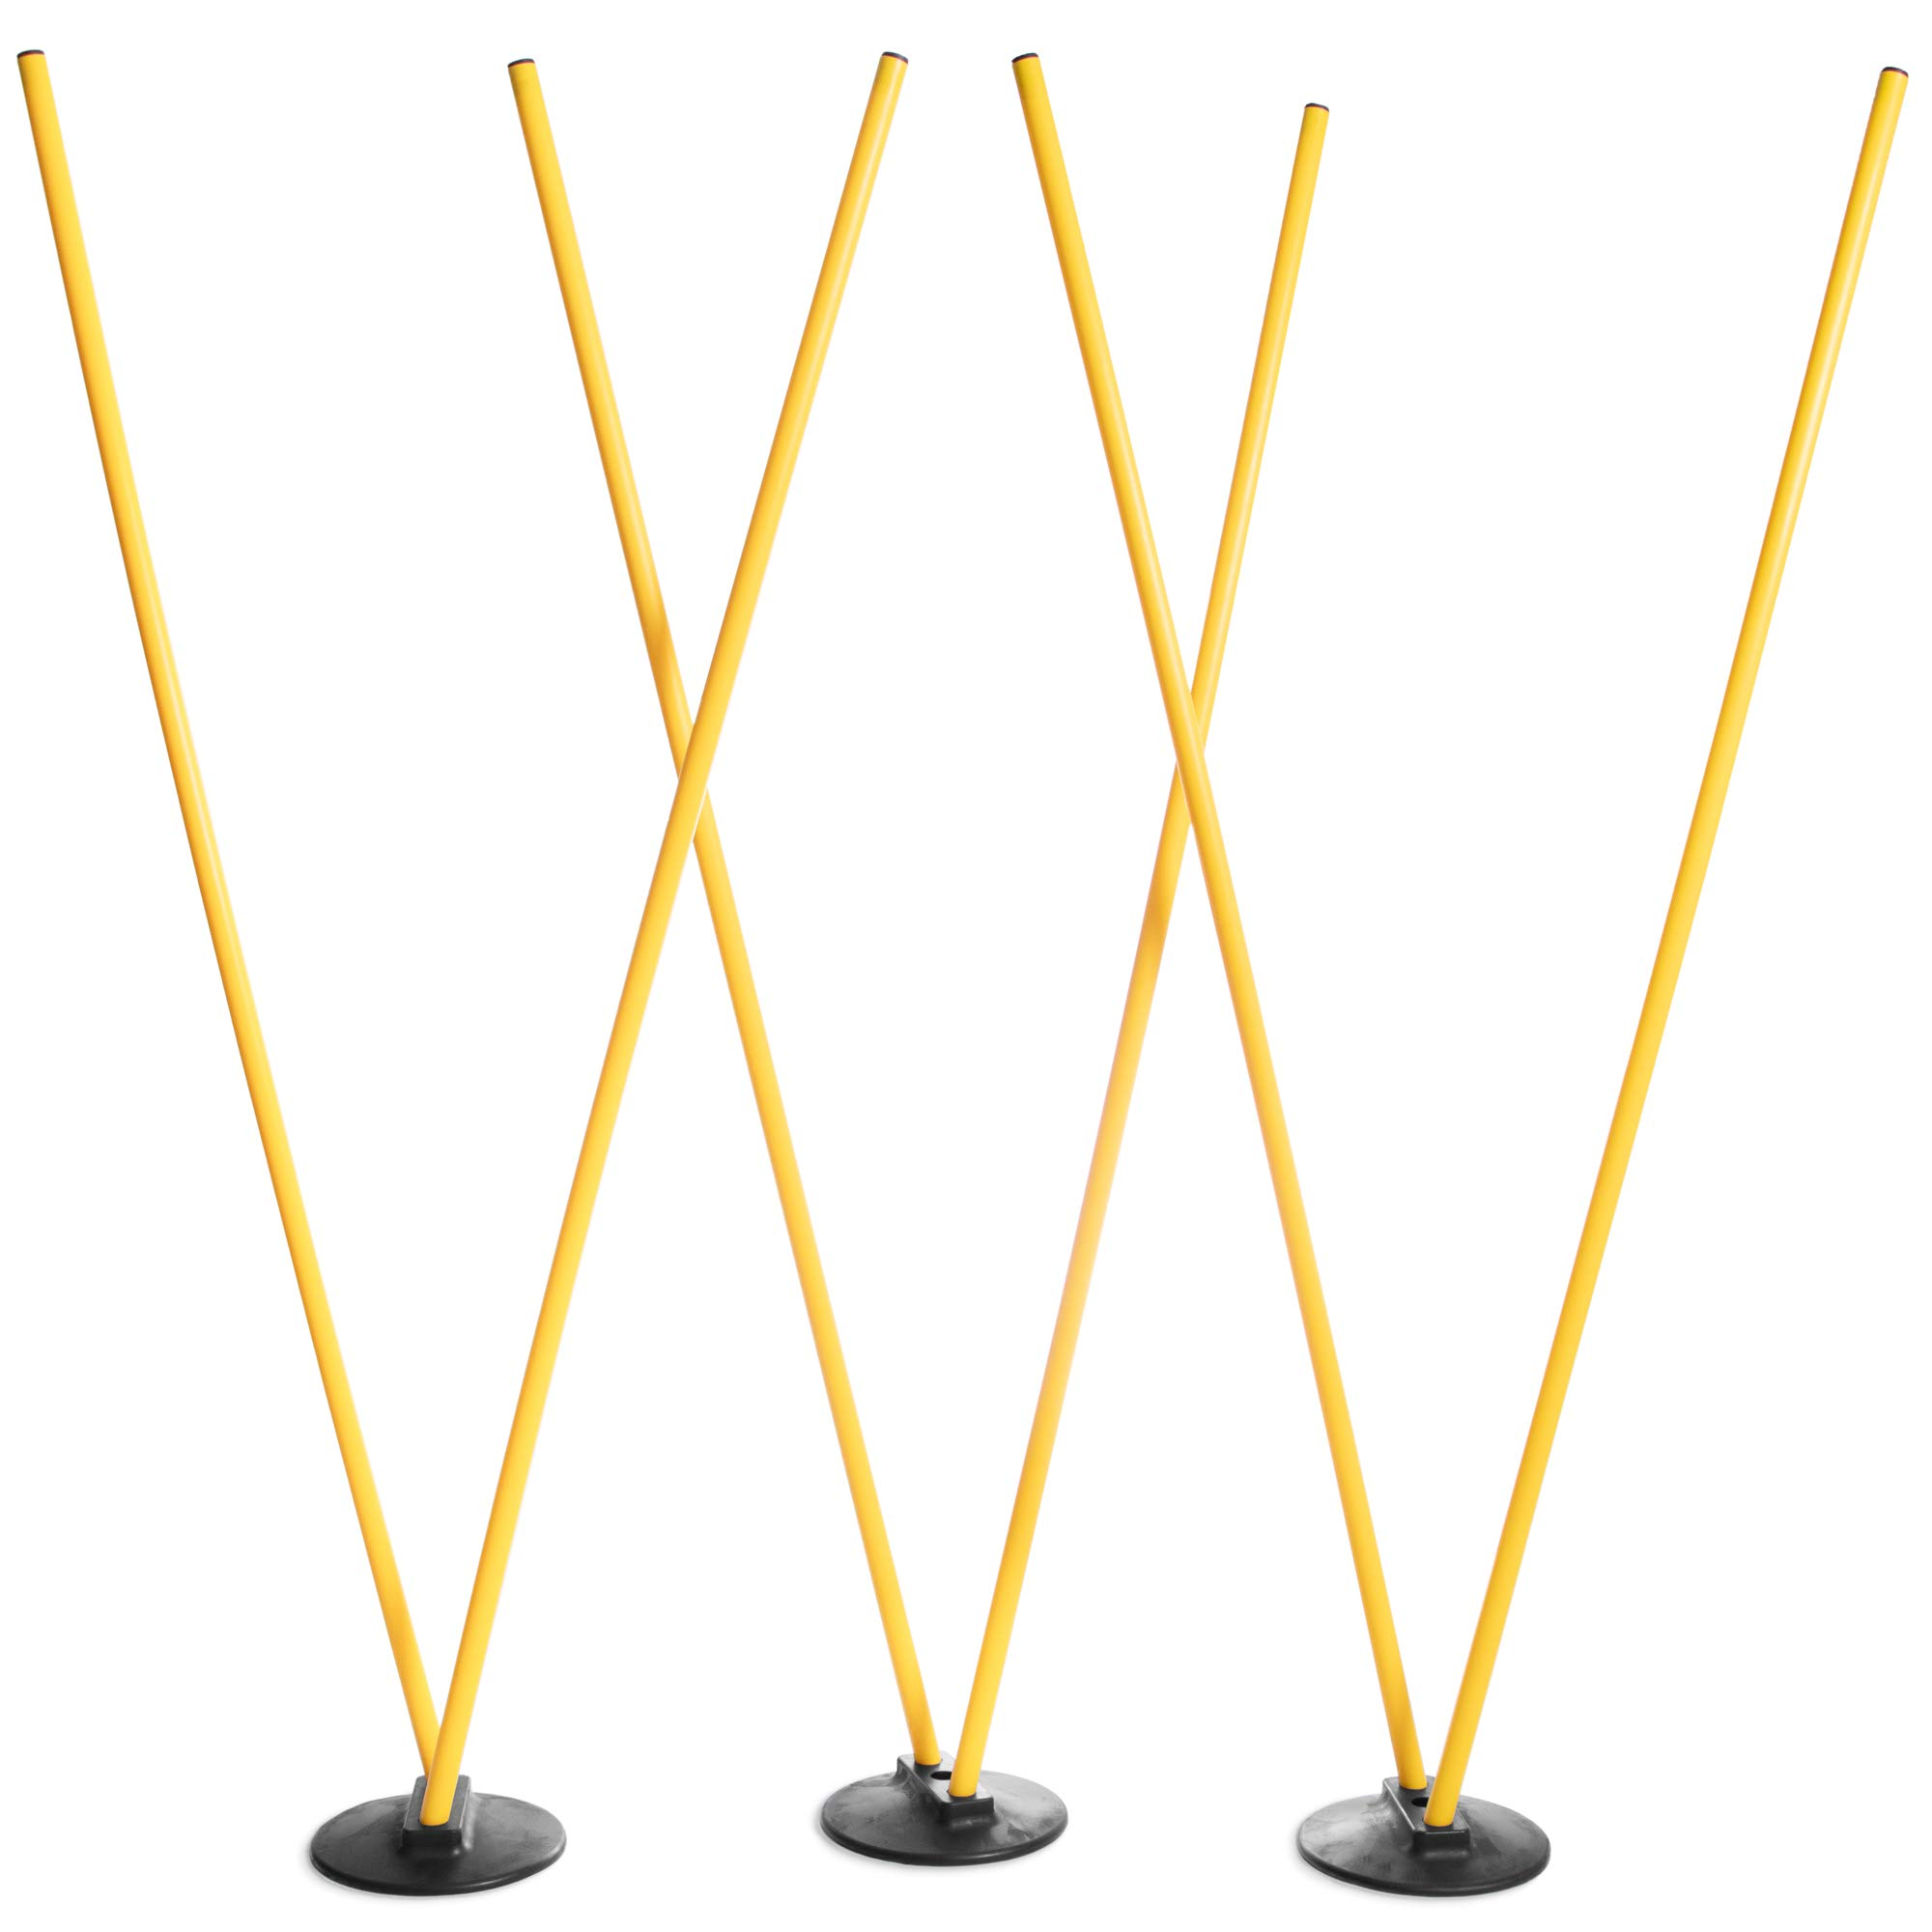 Crown Sporting Goods 6 Agility Poles with 3 Bases – Highly Visible, Yellow Poles, Soccer & Football Agility Training…